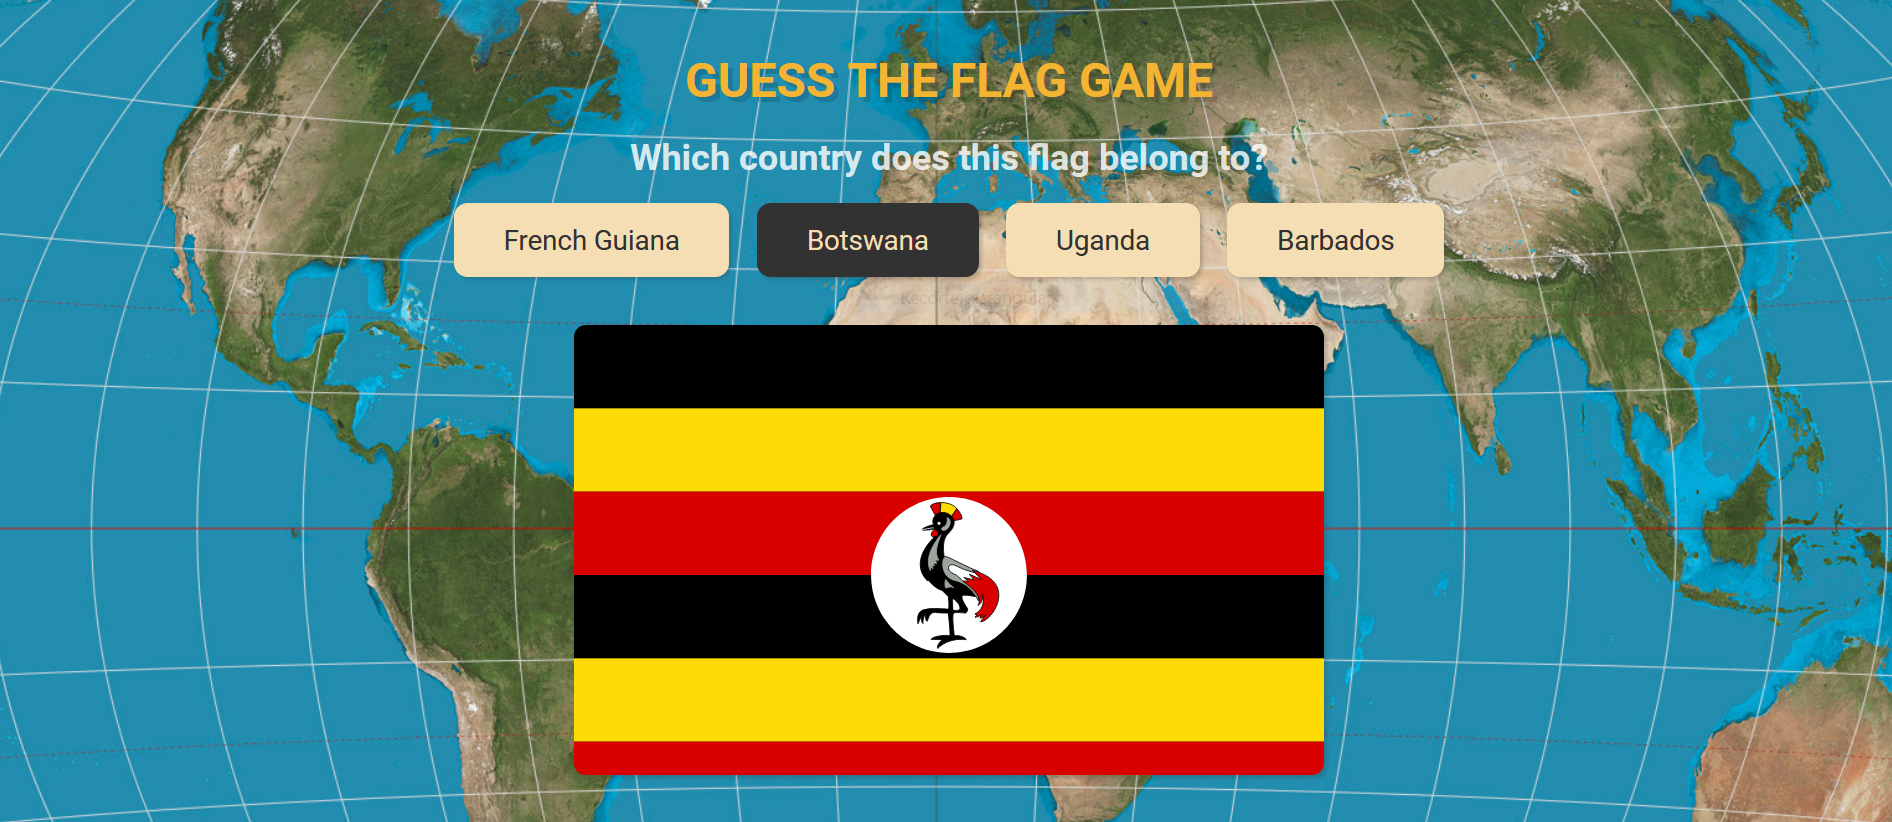 Screenshot of the game: Guess the flag